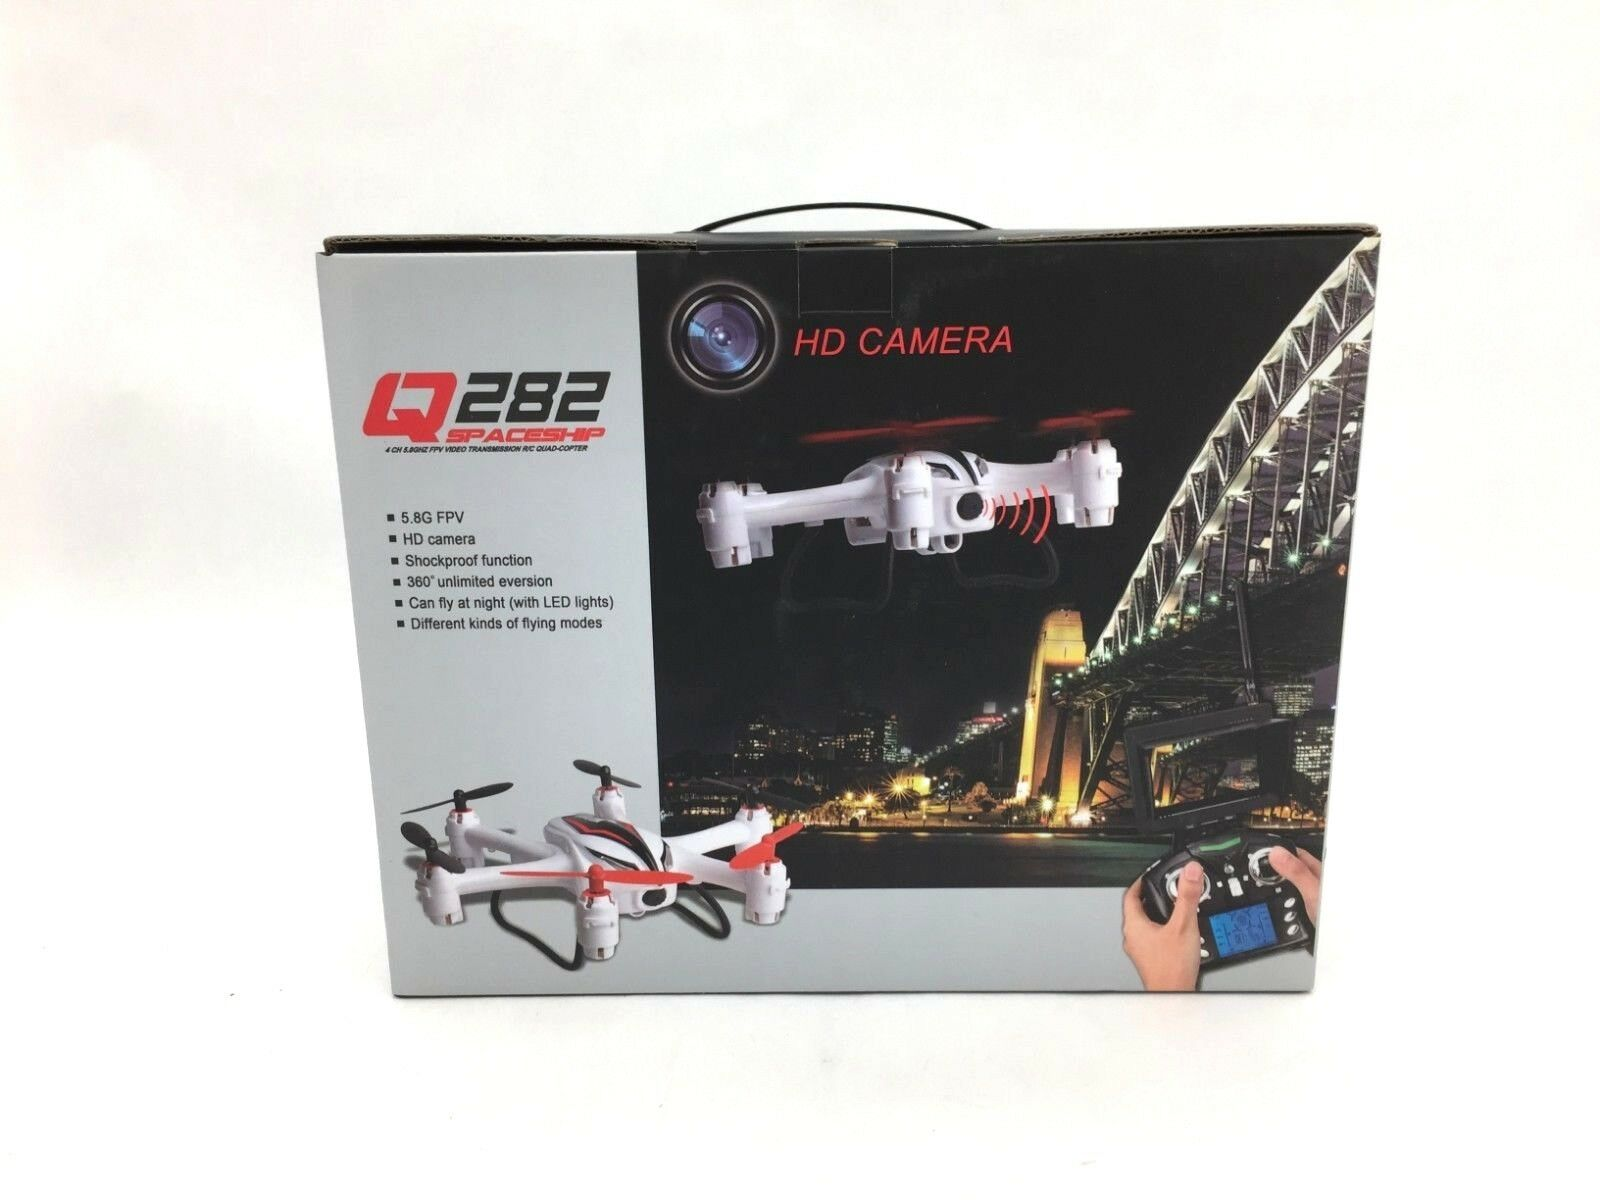 Q282 Spaceship RC Quad Copter with Video Transmission Transmission Transmission by WLToys 621de0